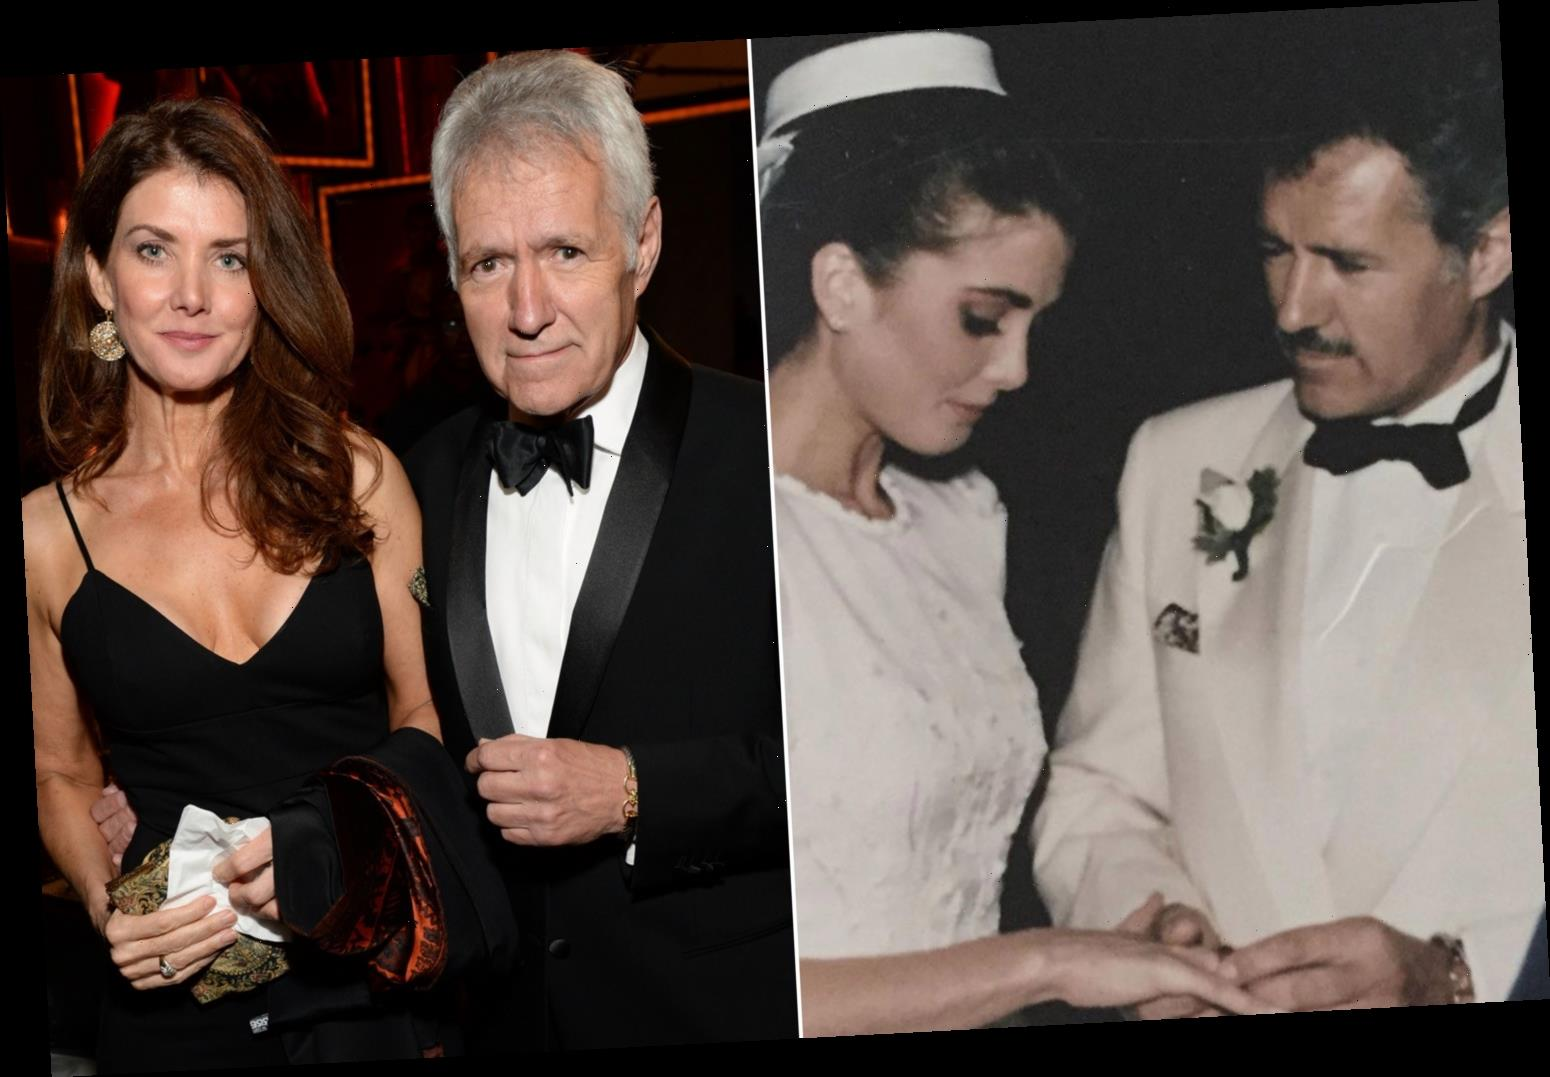 Alex Trebek's wife Jean posts wedding day photo, thanks fans for support